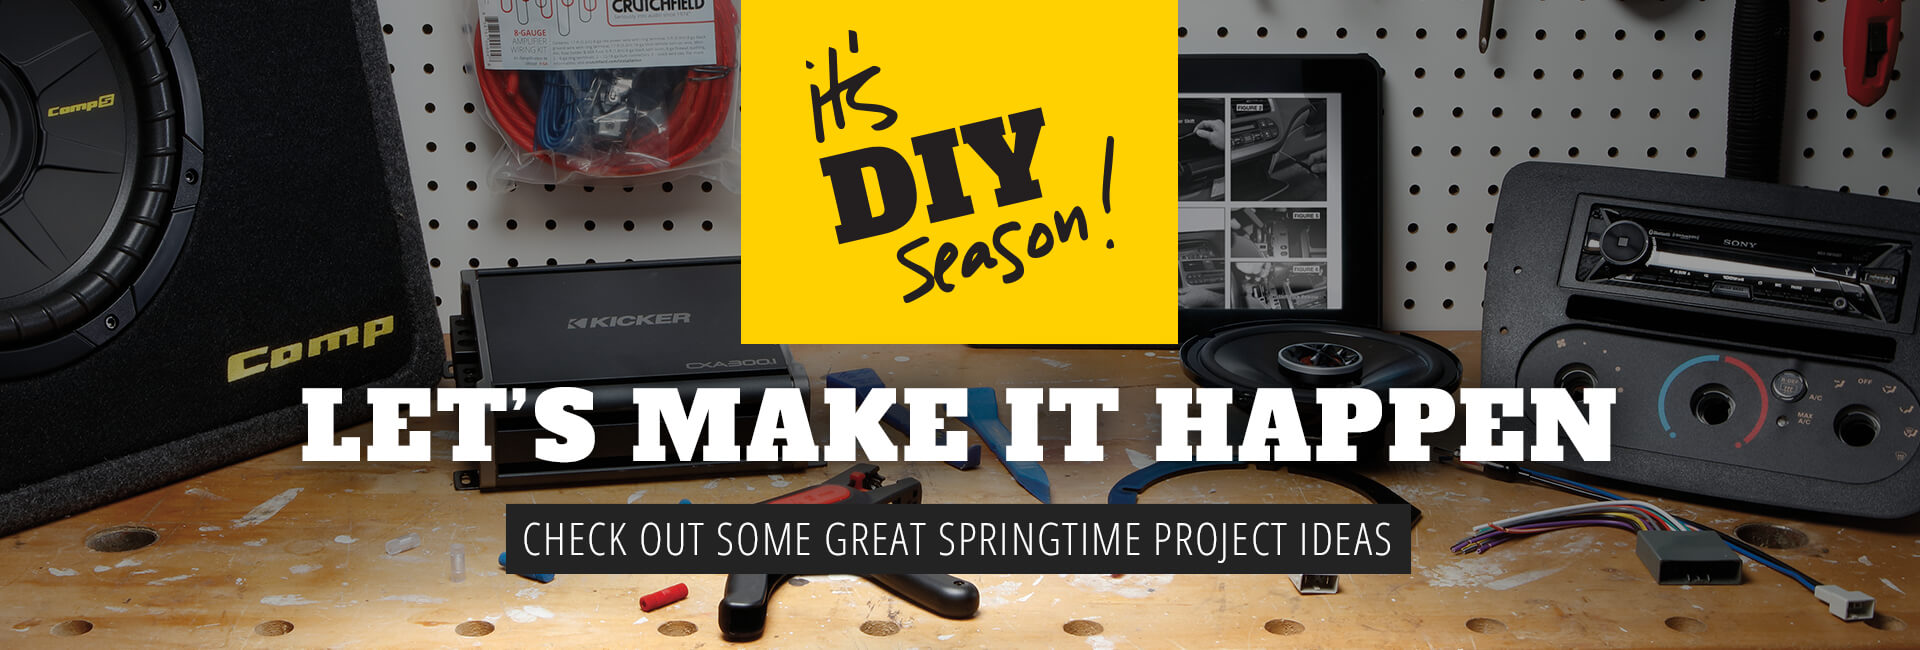 It's DIY season! Check out some great springtime project ideas